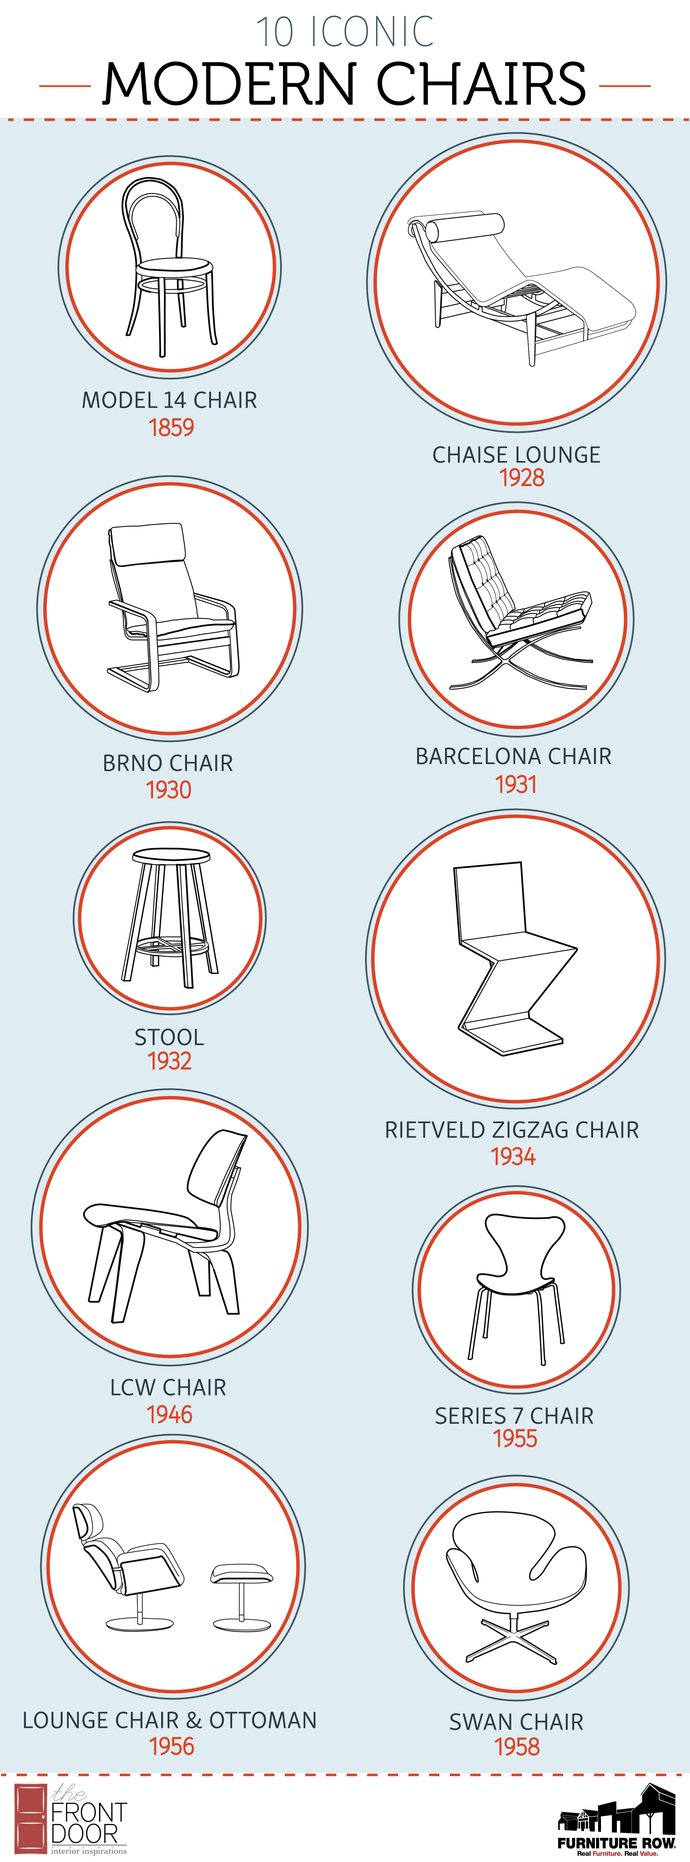 Iconic Modern Furniture Popular Furniture Trends 10 Iconic Modern Chairs Infographic